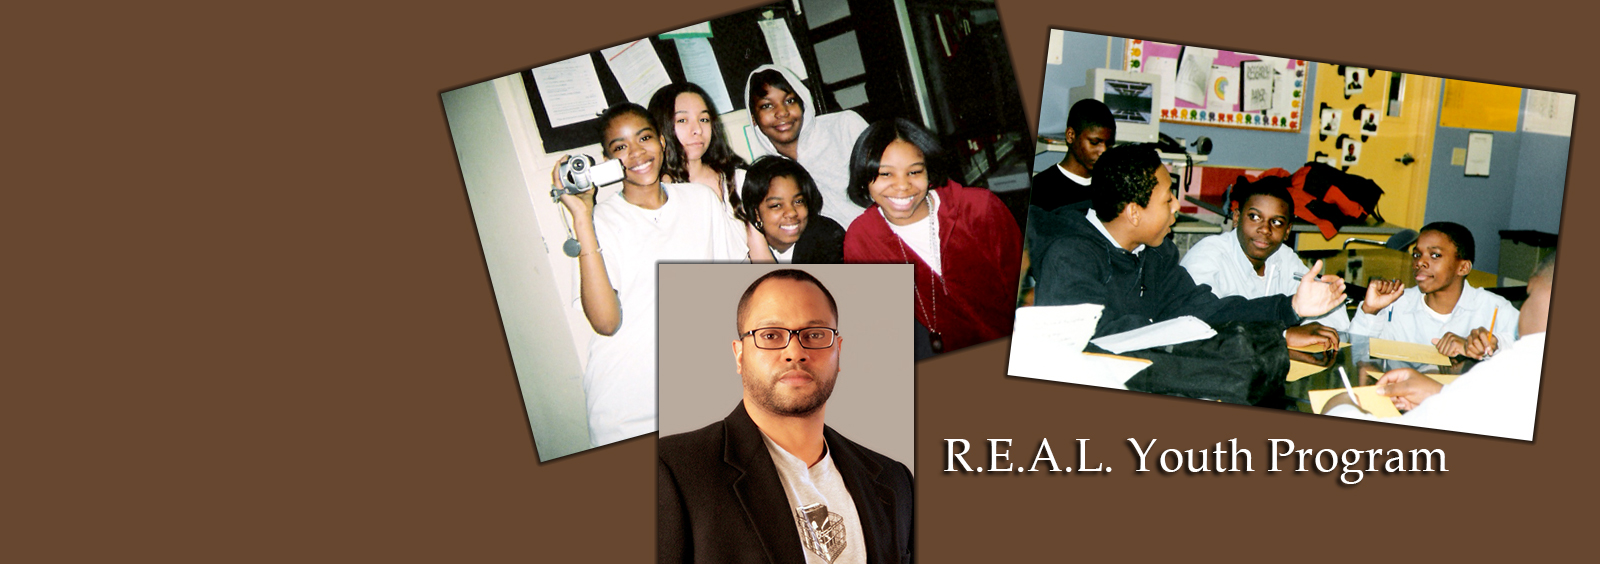 Horace R. Hall and the R.E.A.L. Youth Program